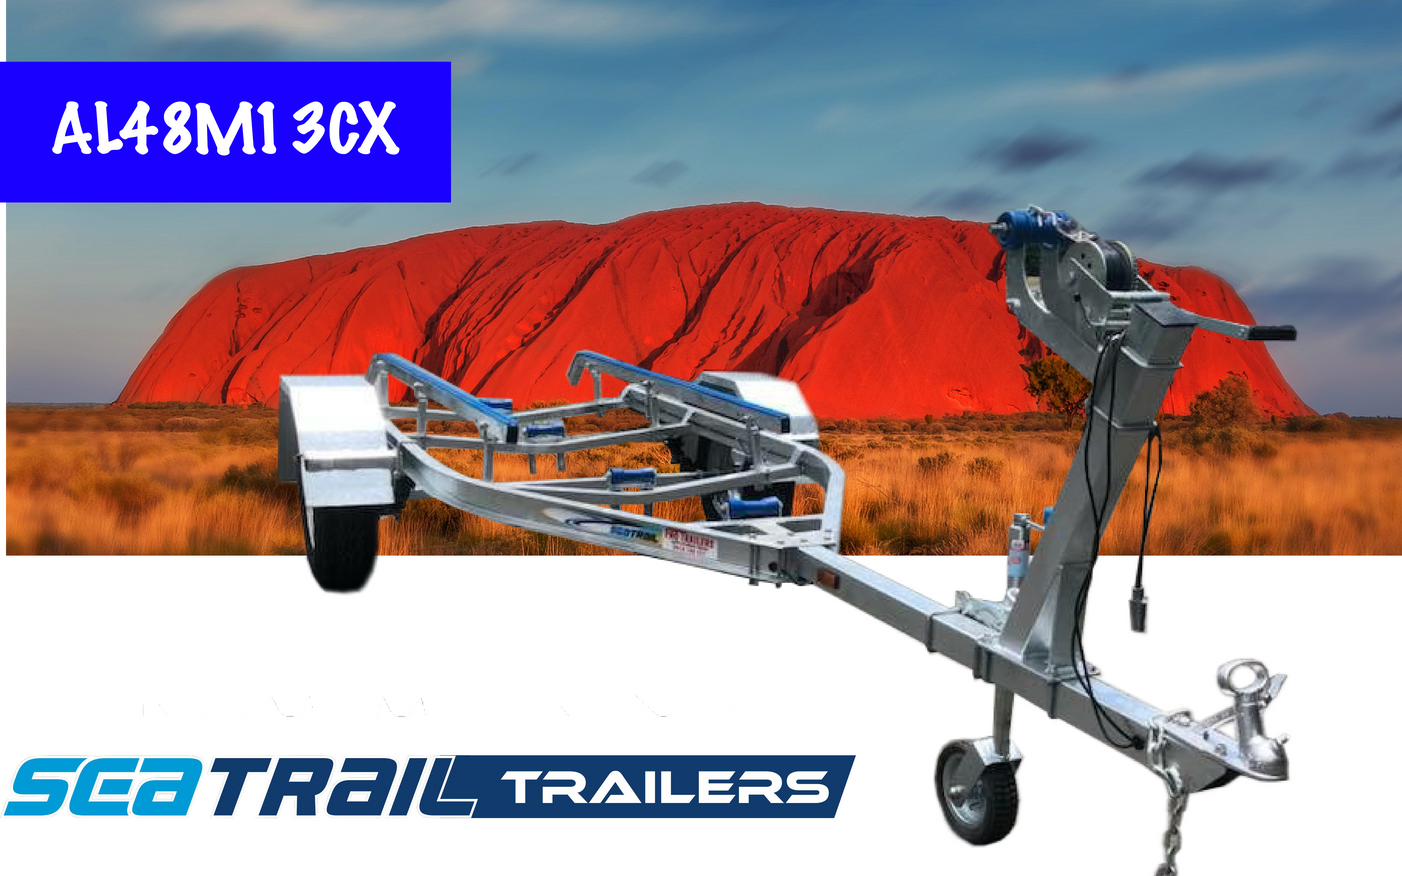 SEATRAIL AL4.8M15CX 4X4 SKID C-CHANNEL BOAT TRAILER